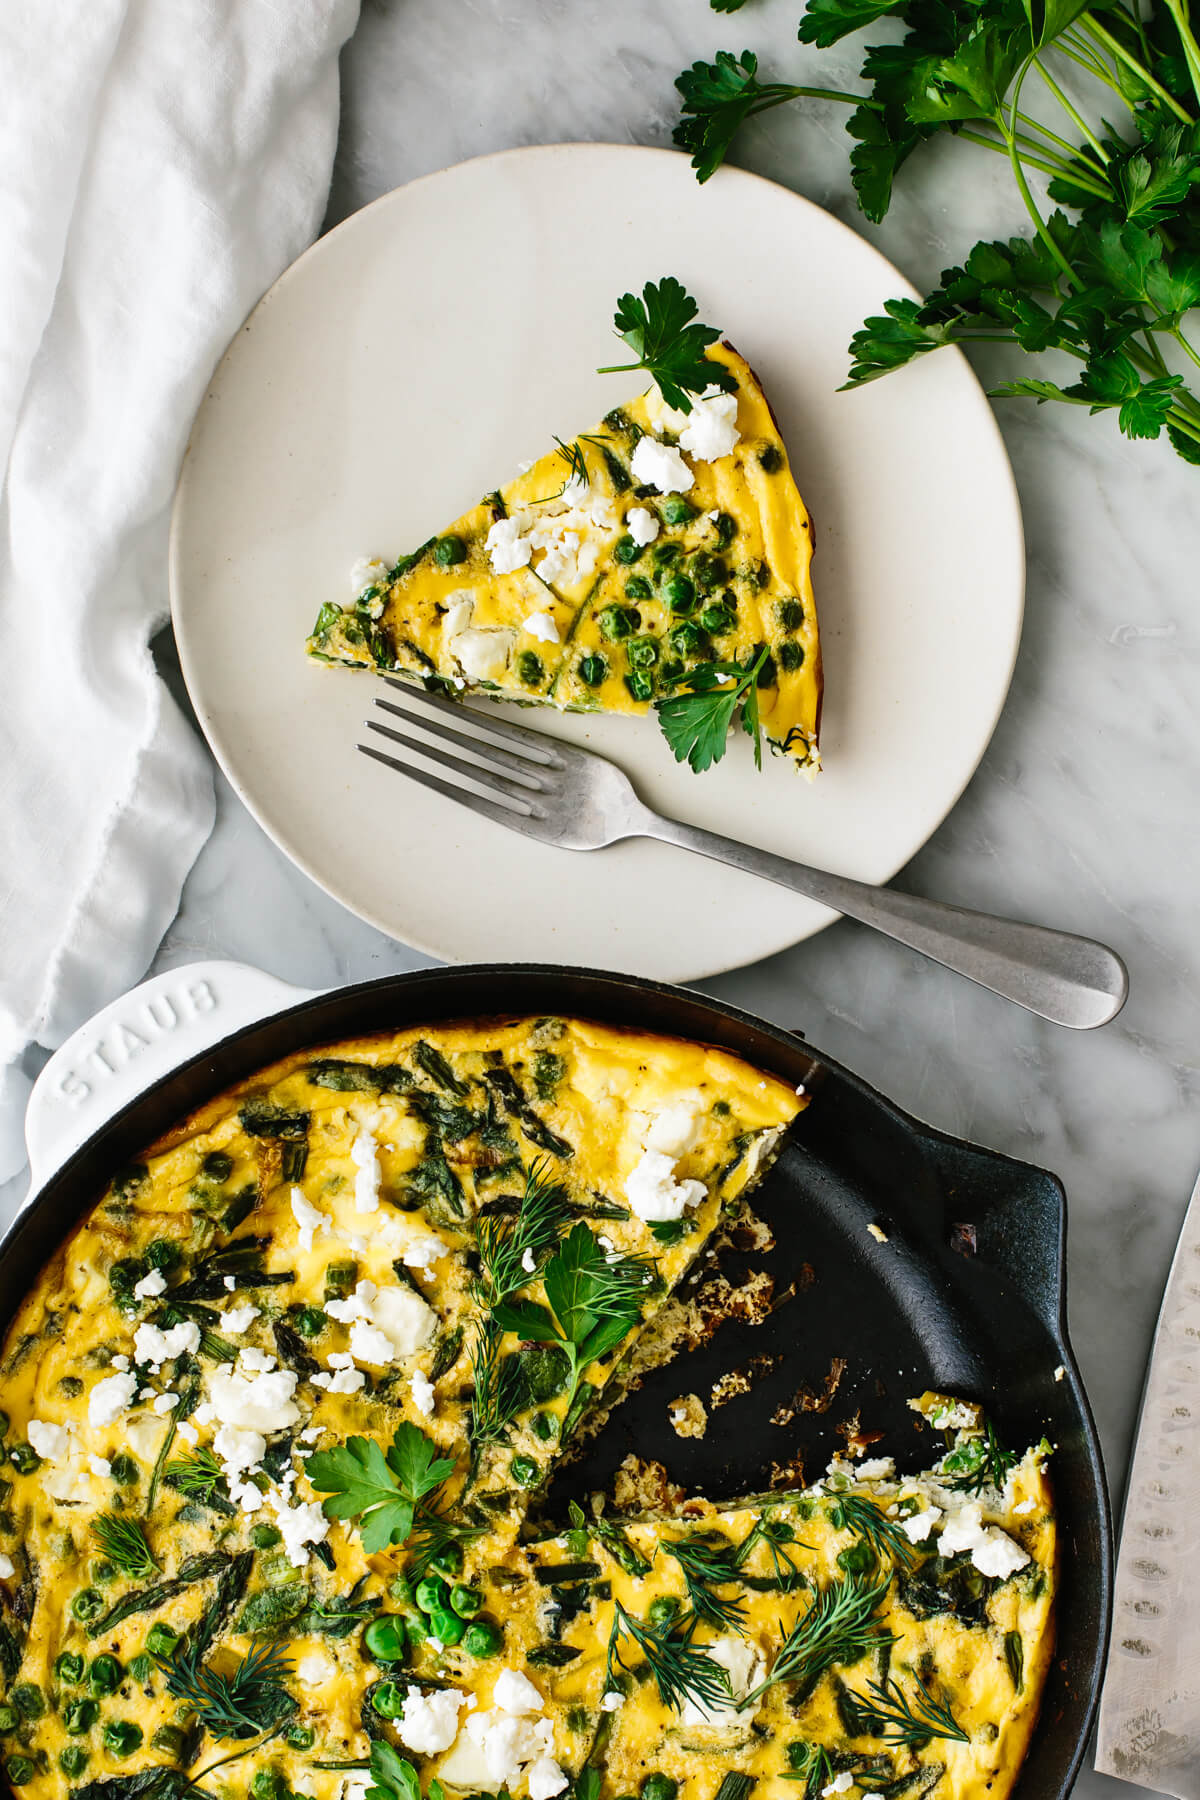 A skillet of spring vegetable frittata next to a plate with a fork.